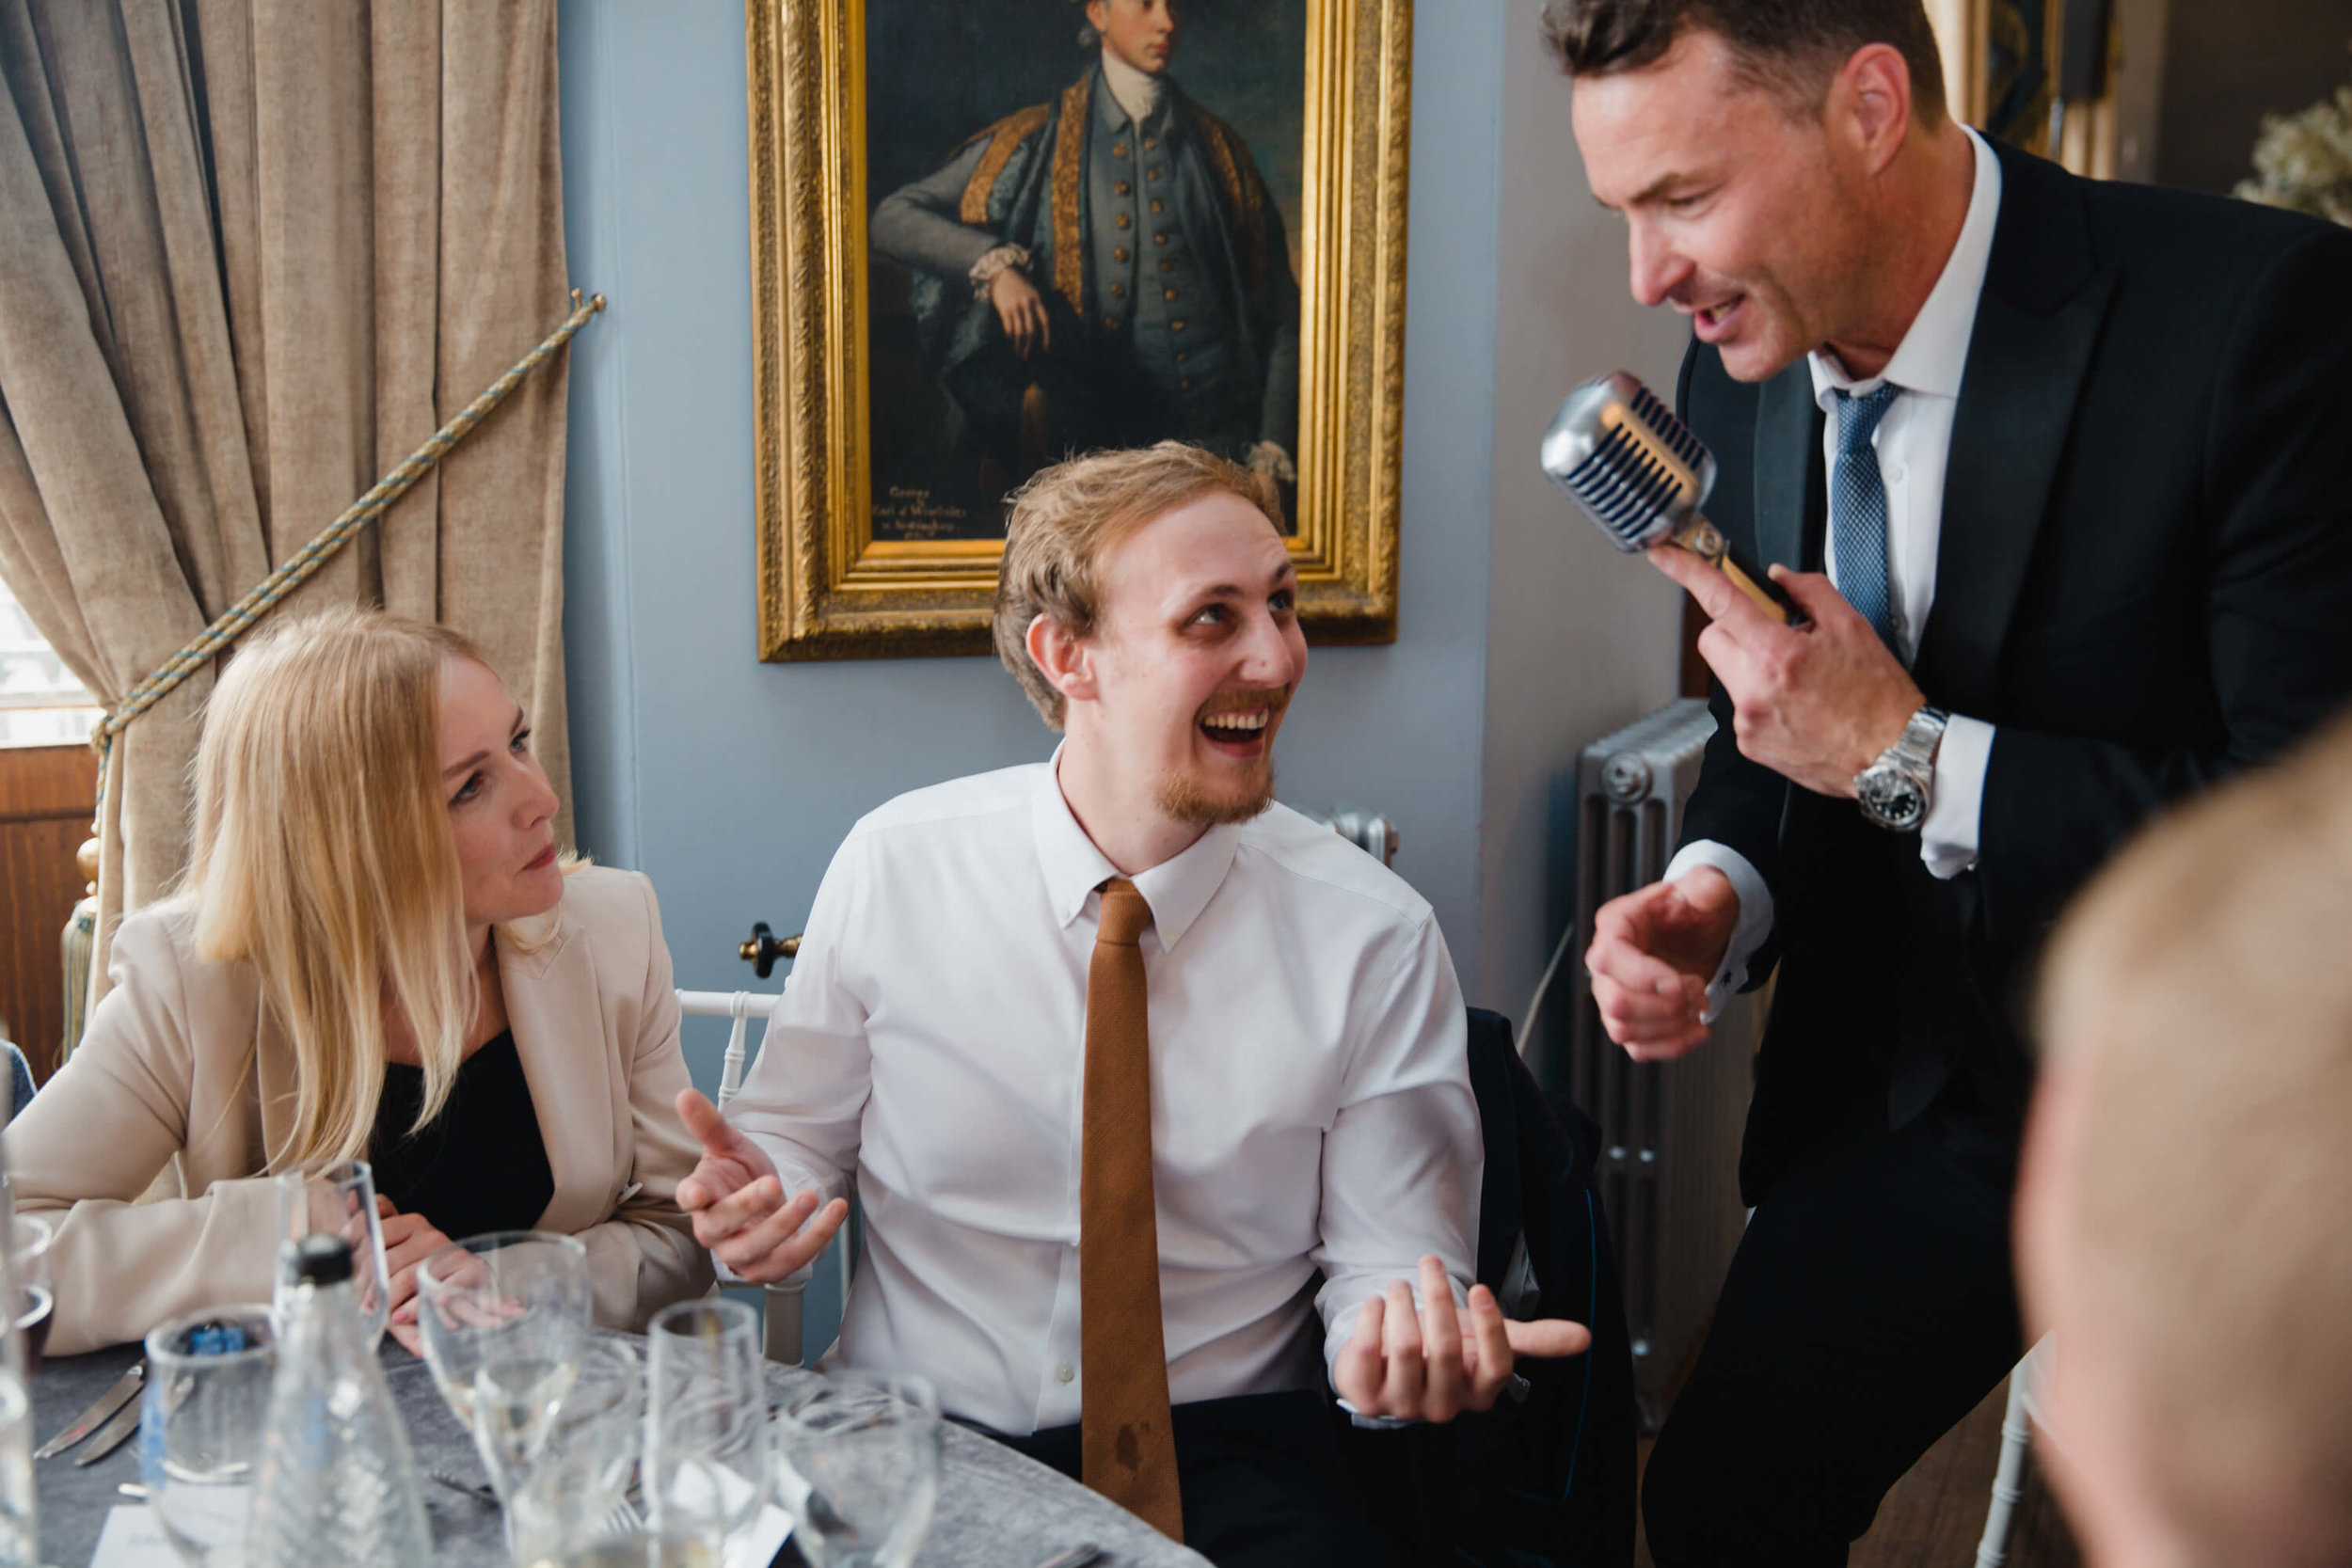 wedding guest singing into microphone during entertainment